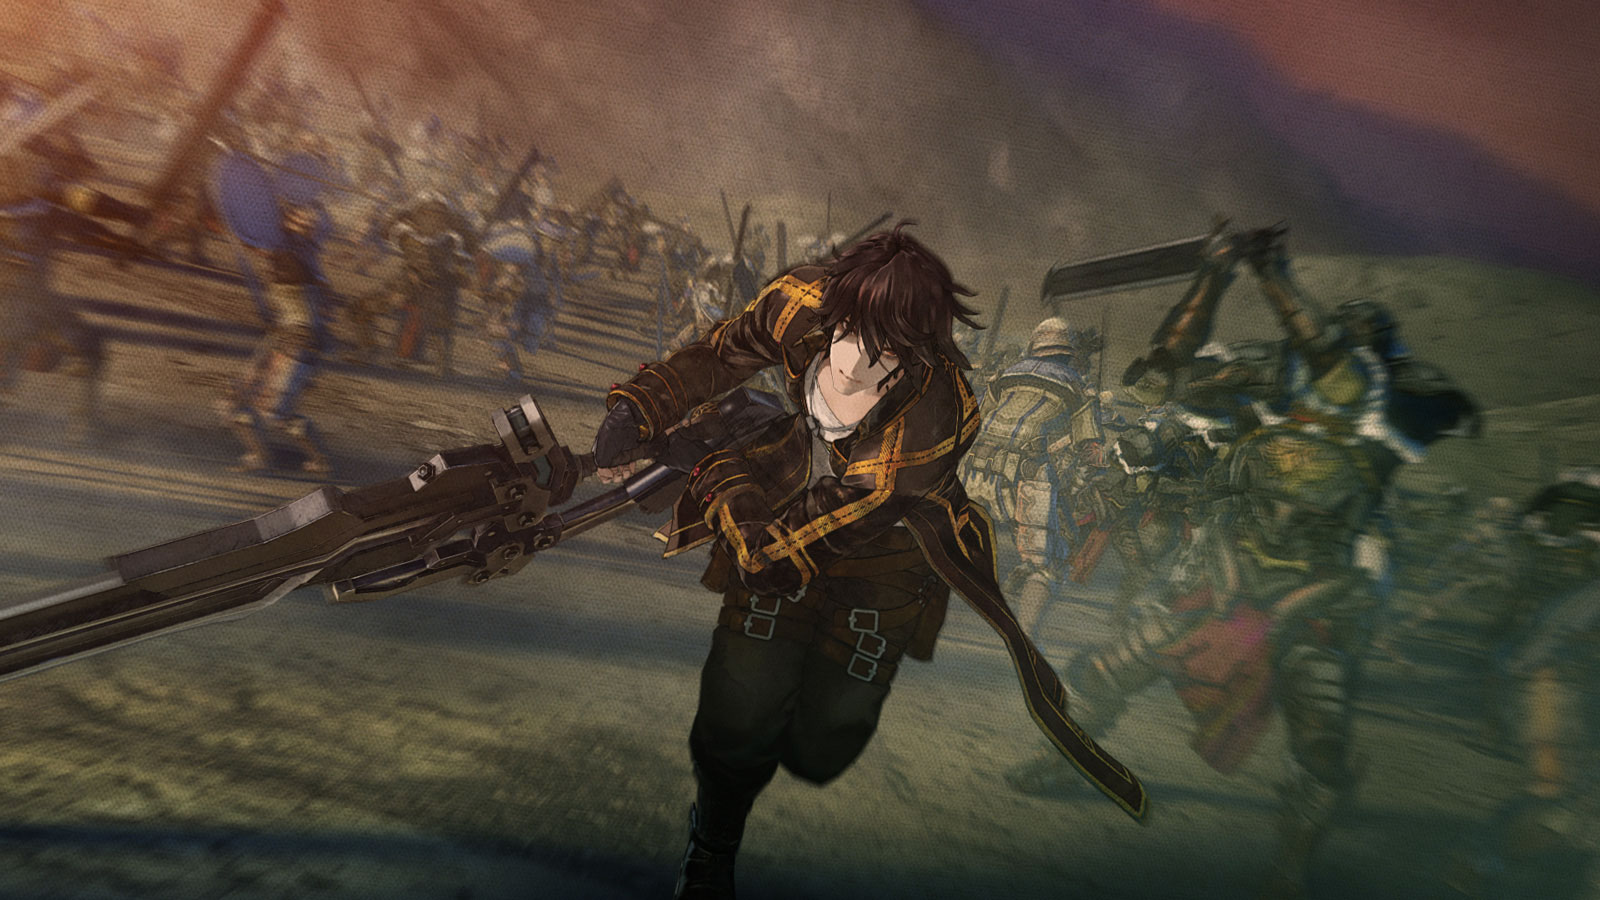 Sega's new Valkyria game is very different